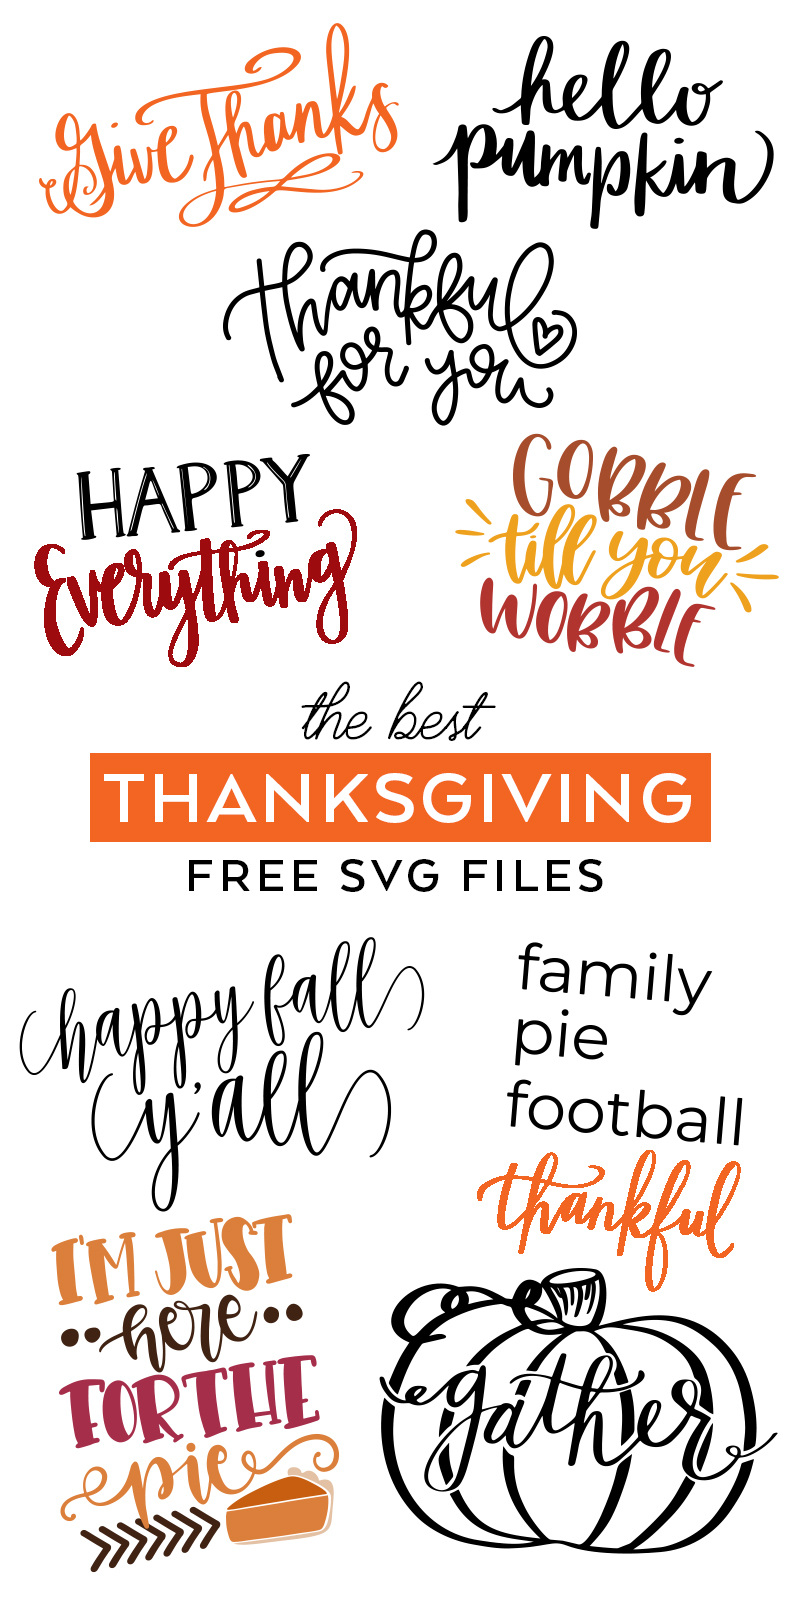 Thankful Svg : thankful, Thanksgiving, Files, Pineapple, Paper